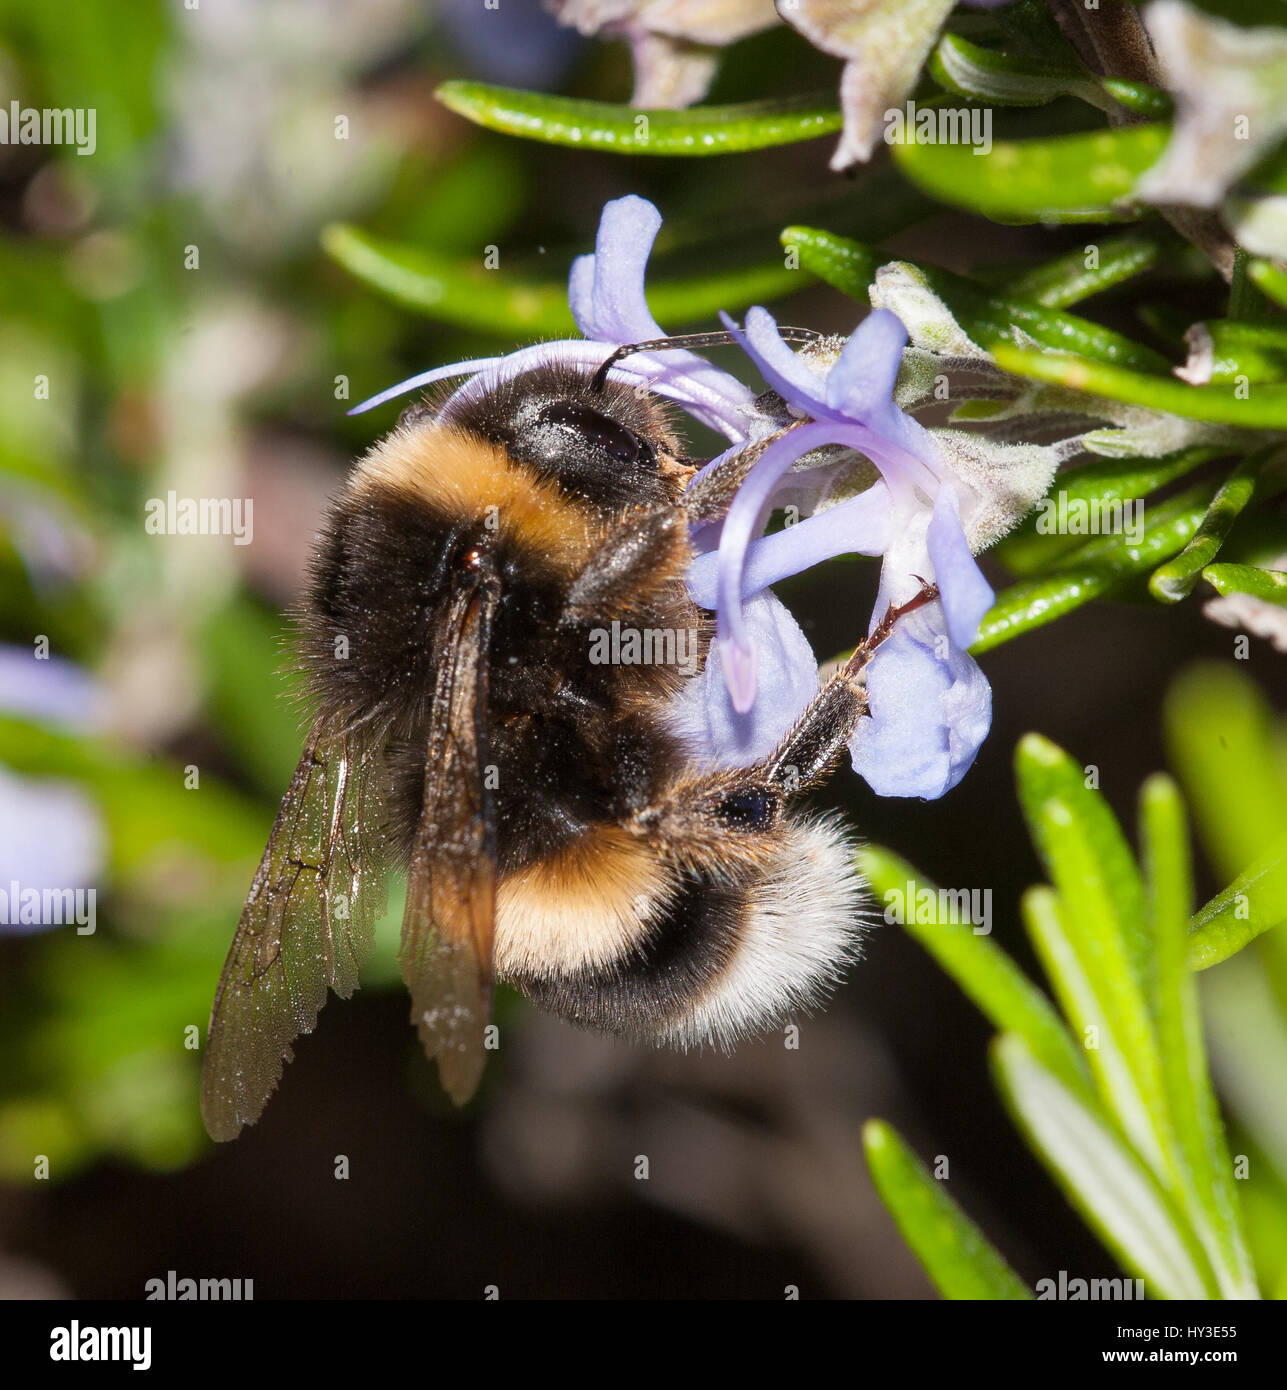 Bumblebee feeding on nectar from rosemary flowers - Stock Image